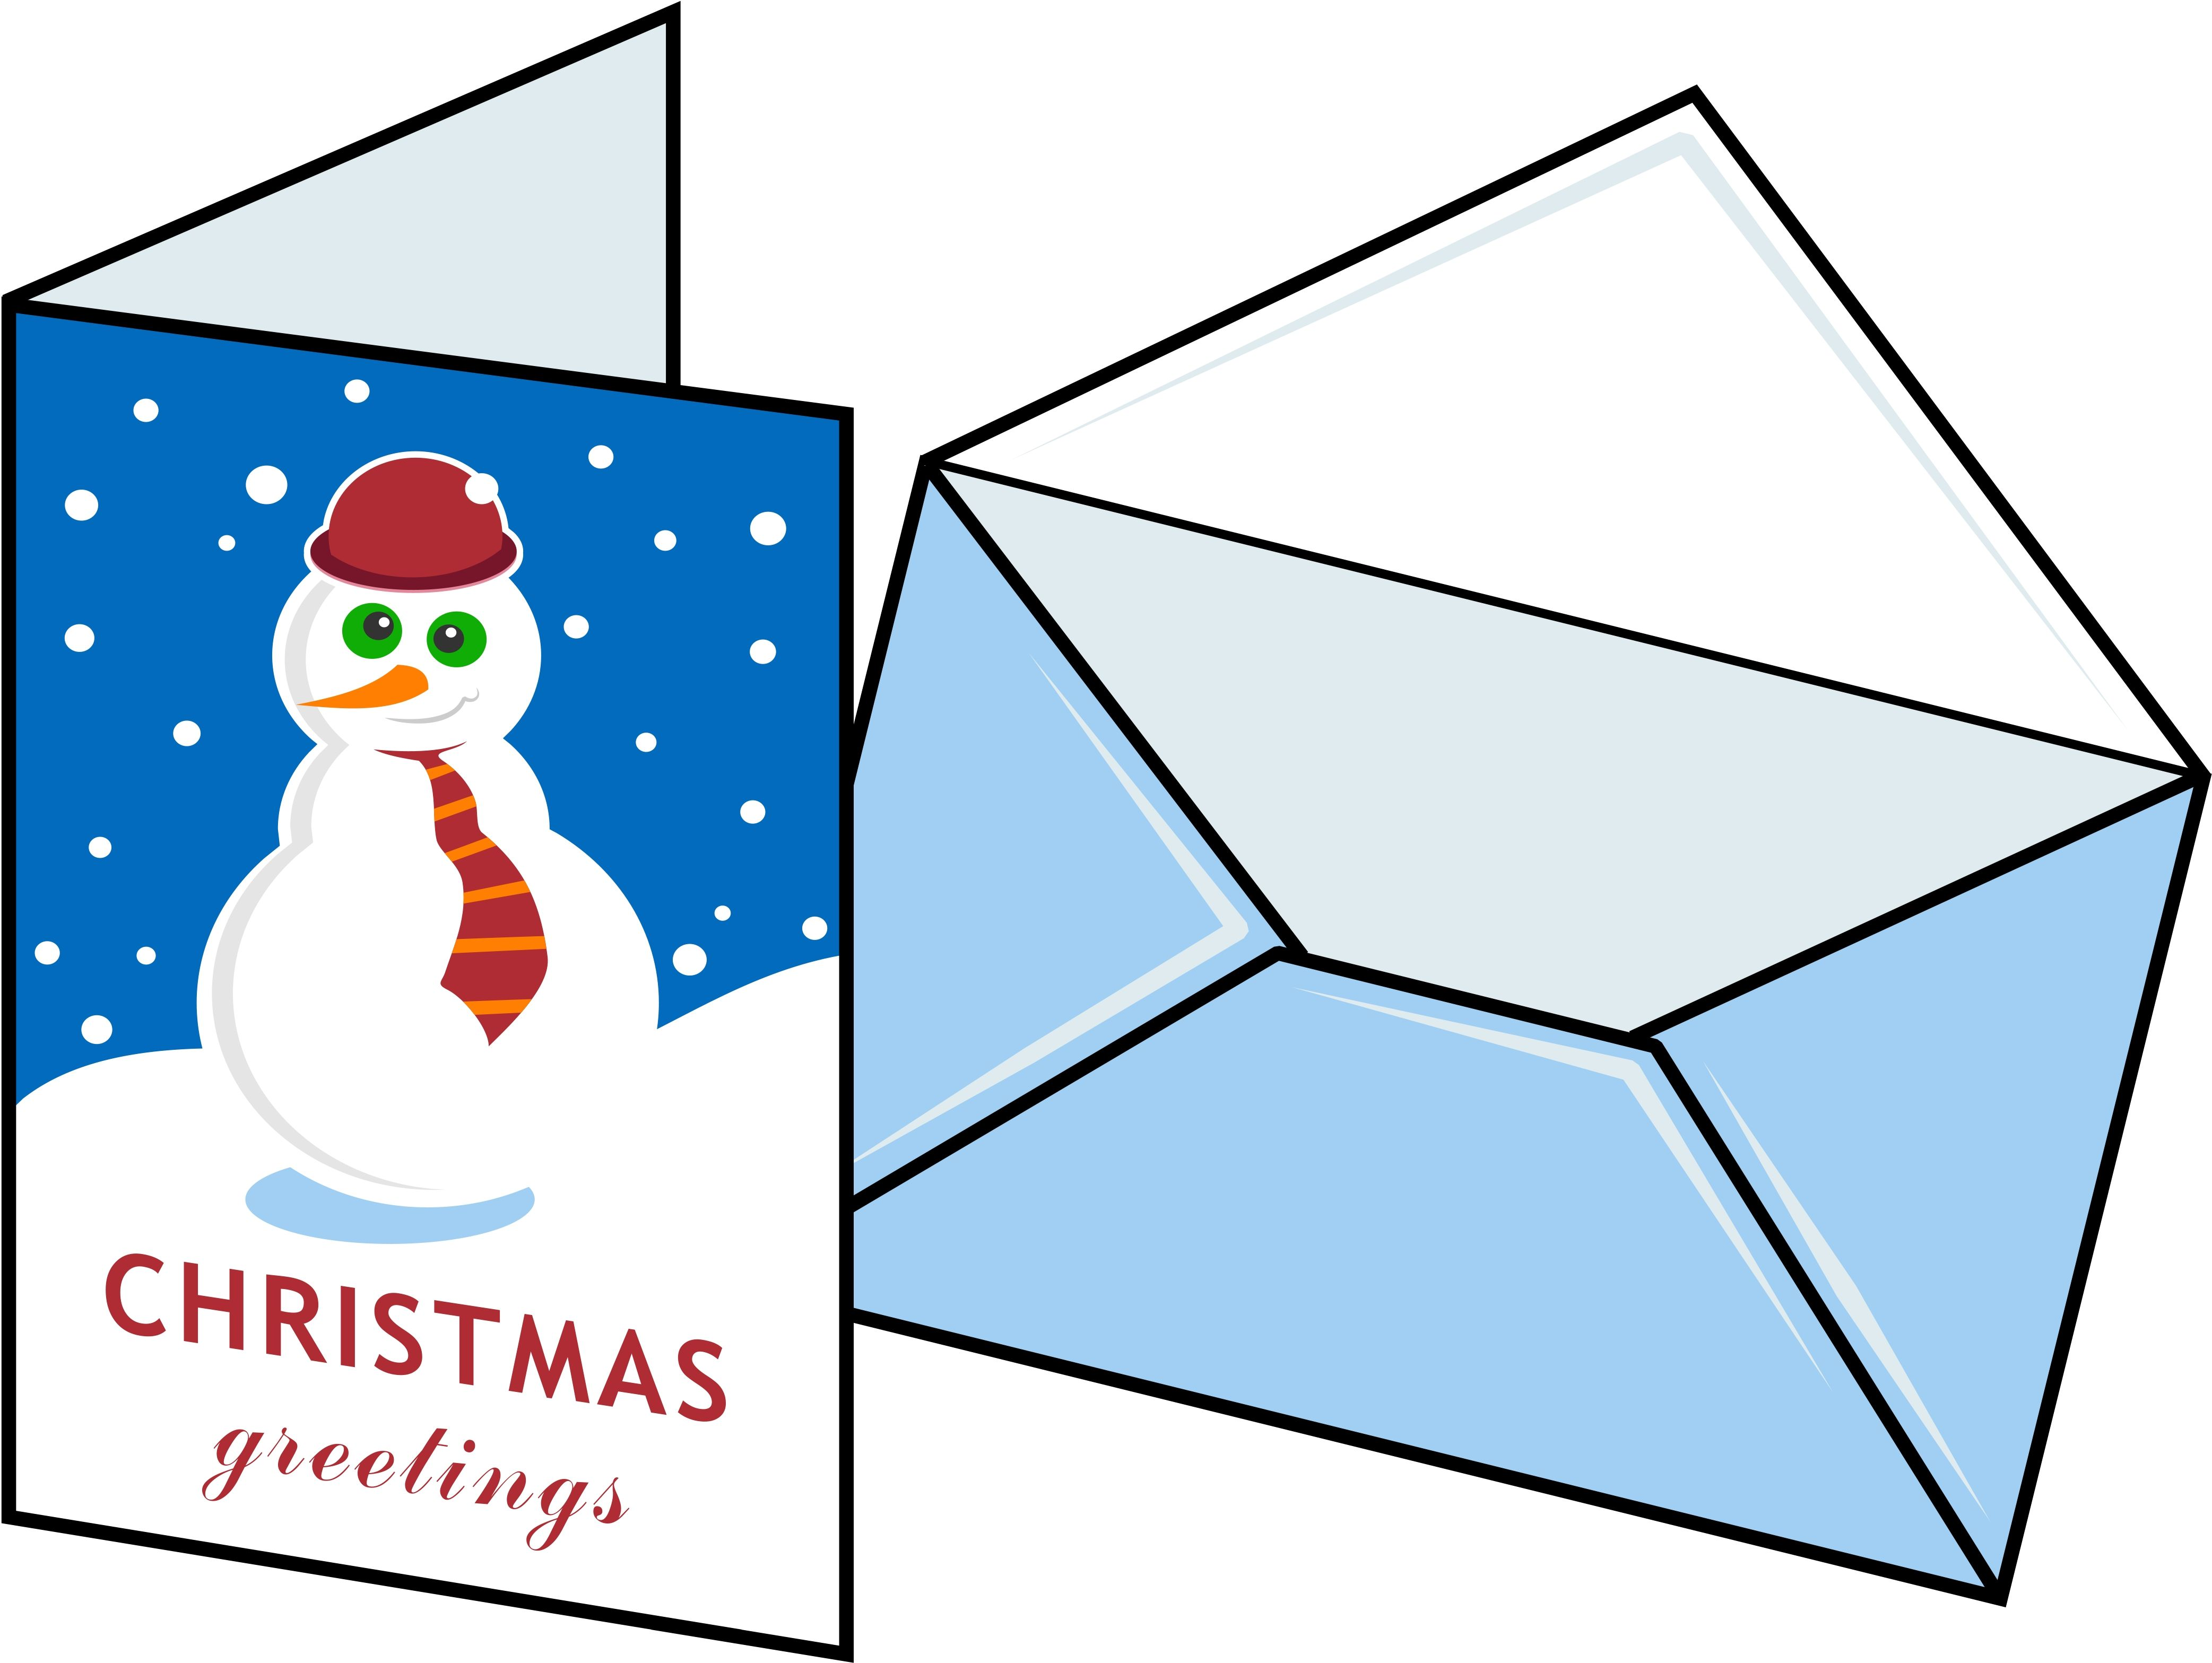 Cardd clipart freeuse download christmas card clipart - Google Search | Christmas Clipart ... freeuse download